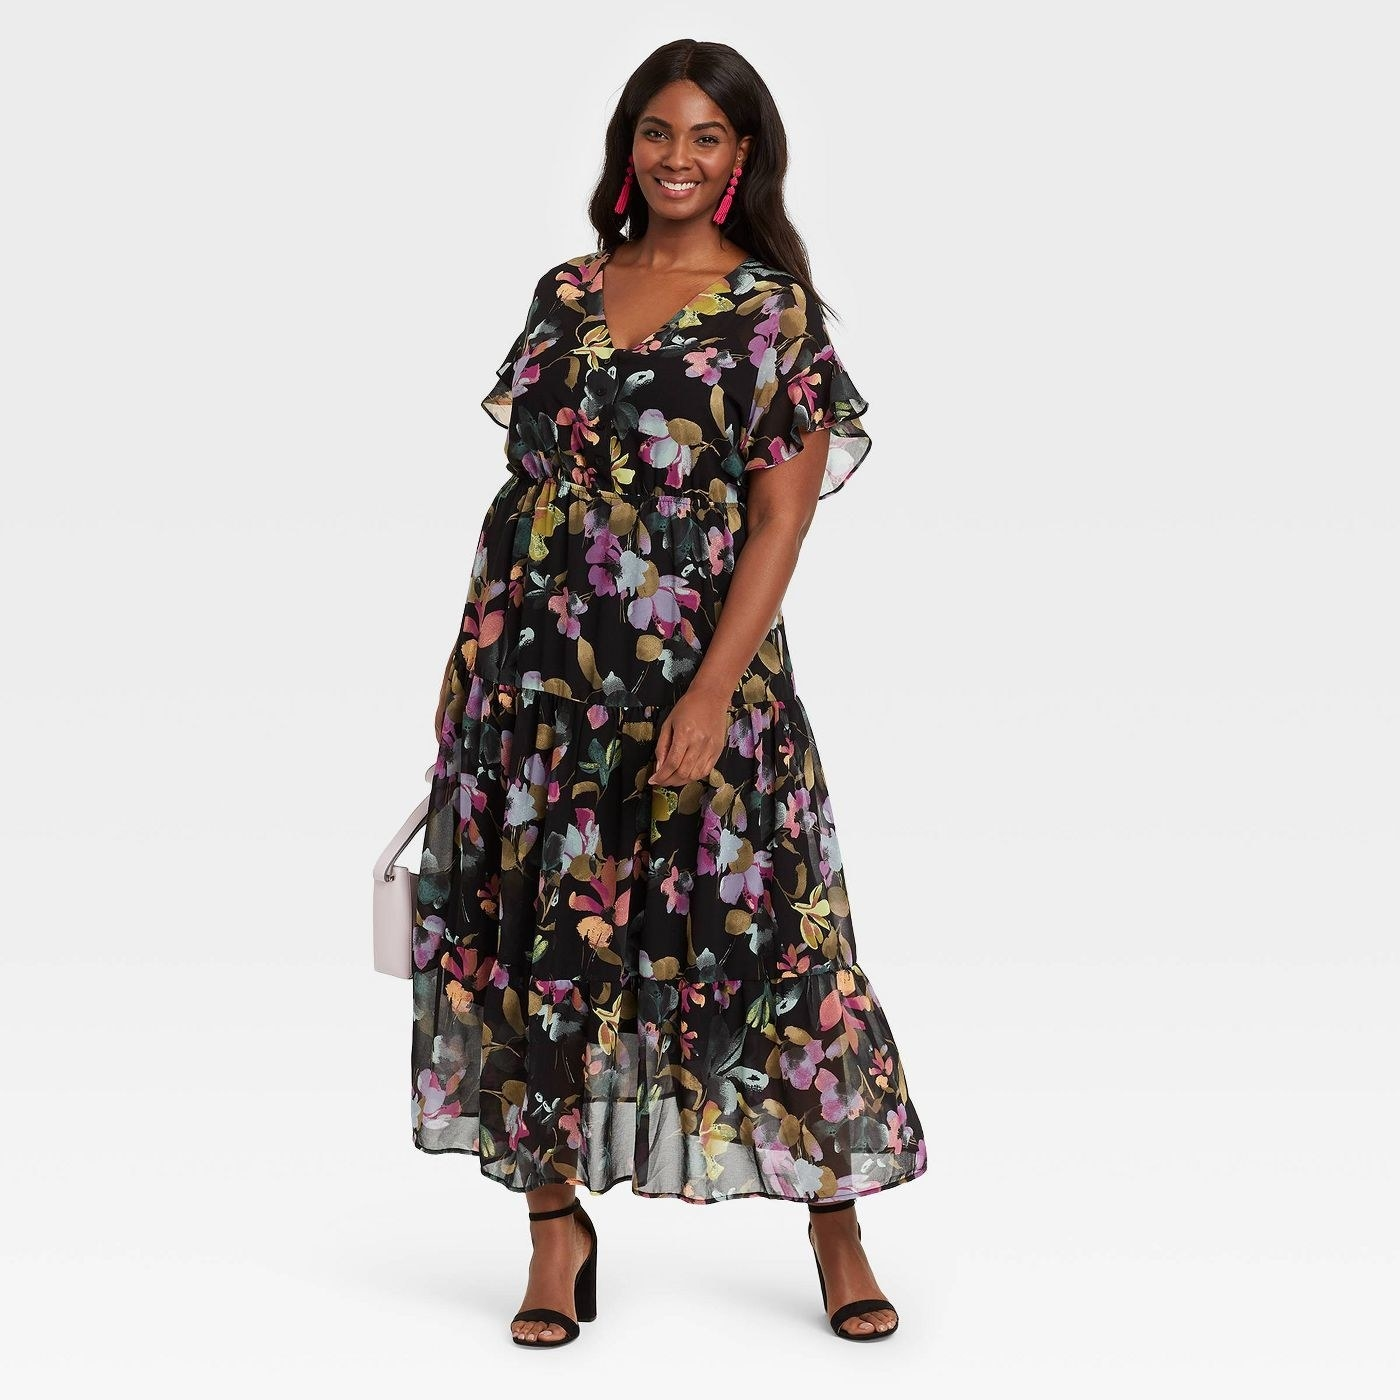 model wearing the tiered black maxi dress with gold, pink, and orange flowers all over it